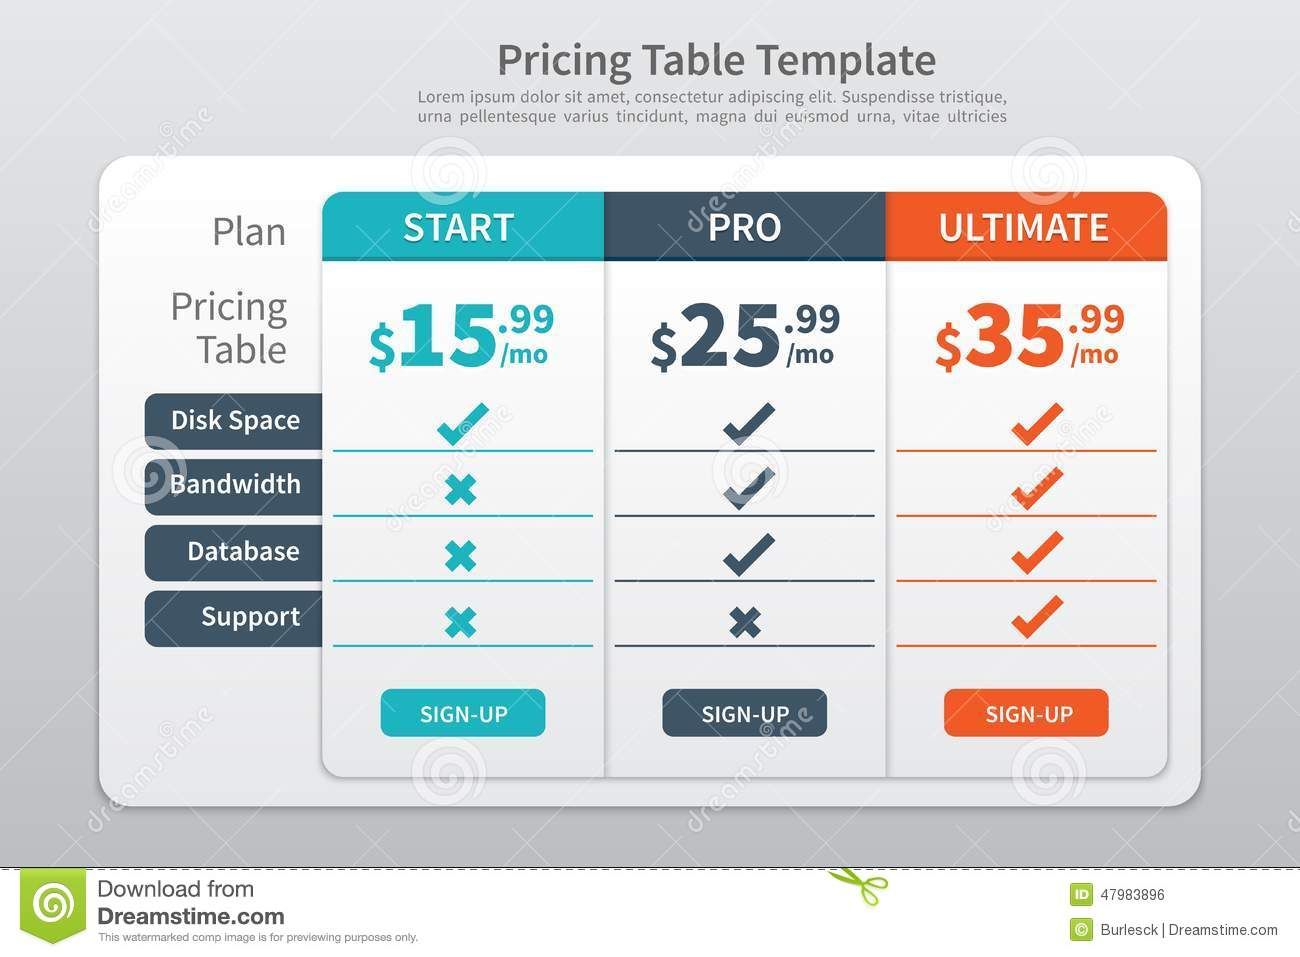 pricing table template graphic design stock vector - illustration of